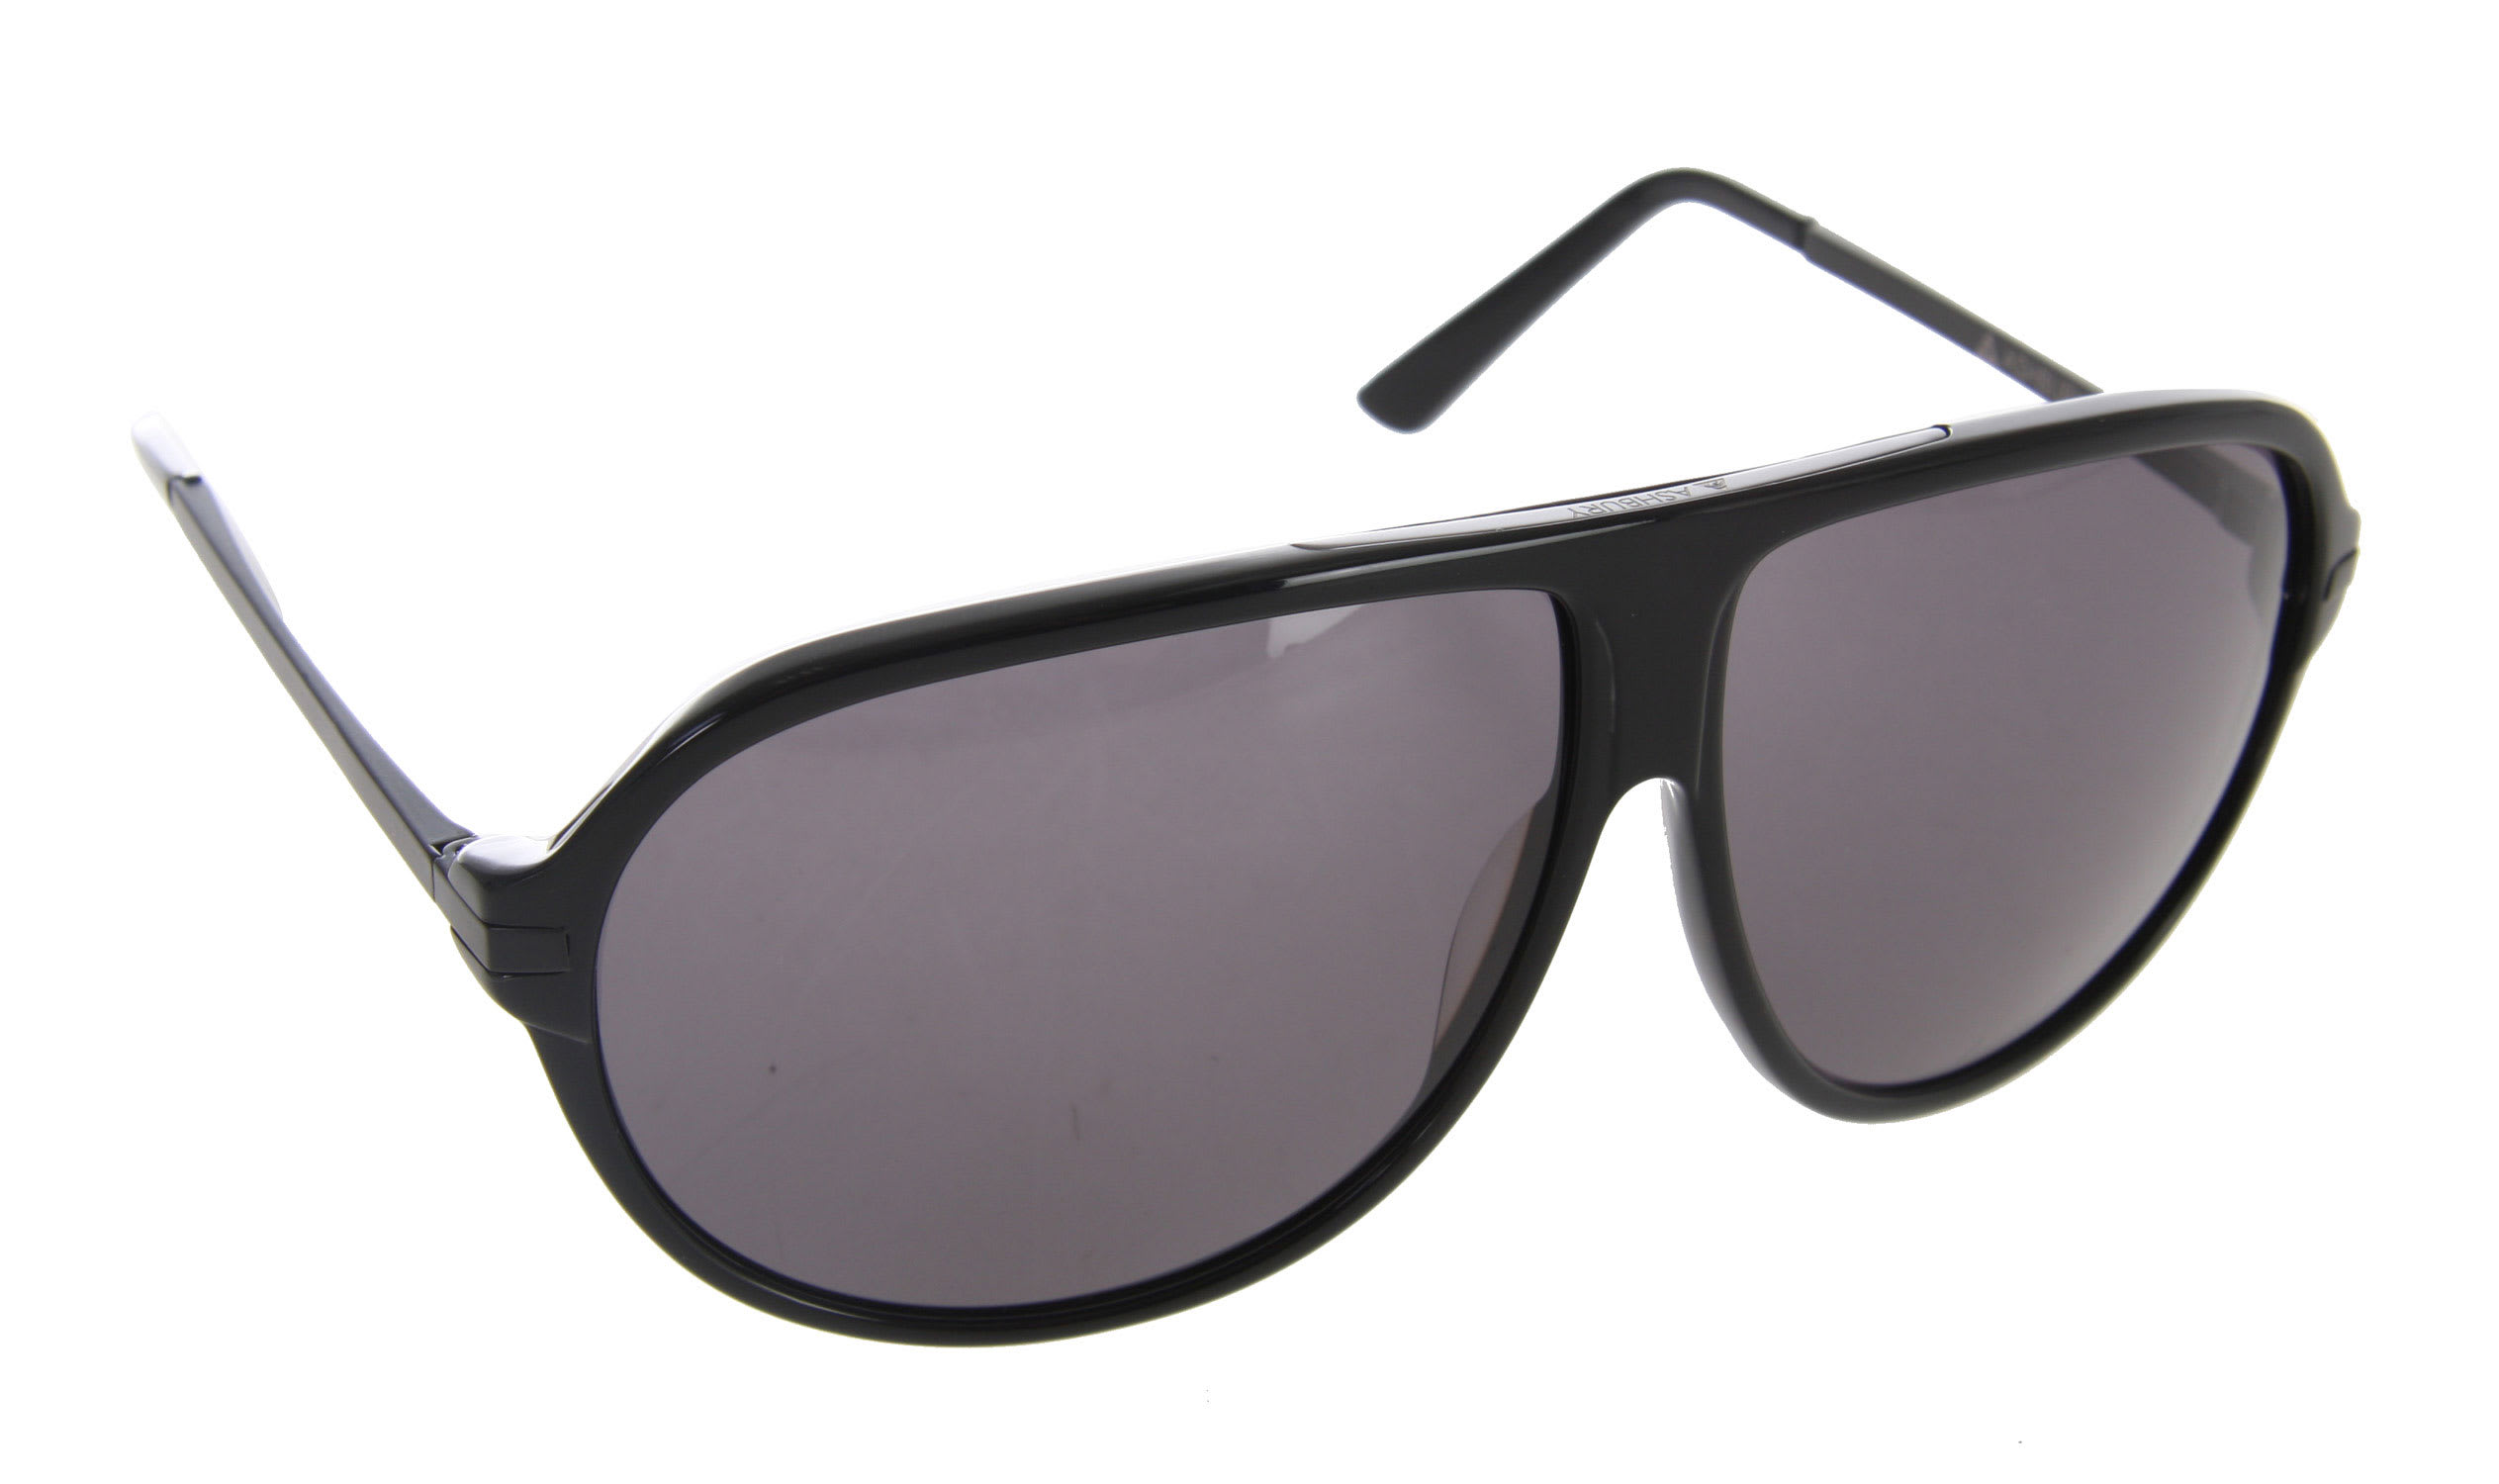 Shop for Ashbury Cosa Nostra Sunglasses Black - Men's